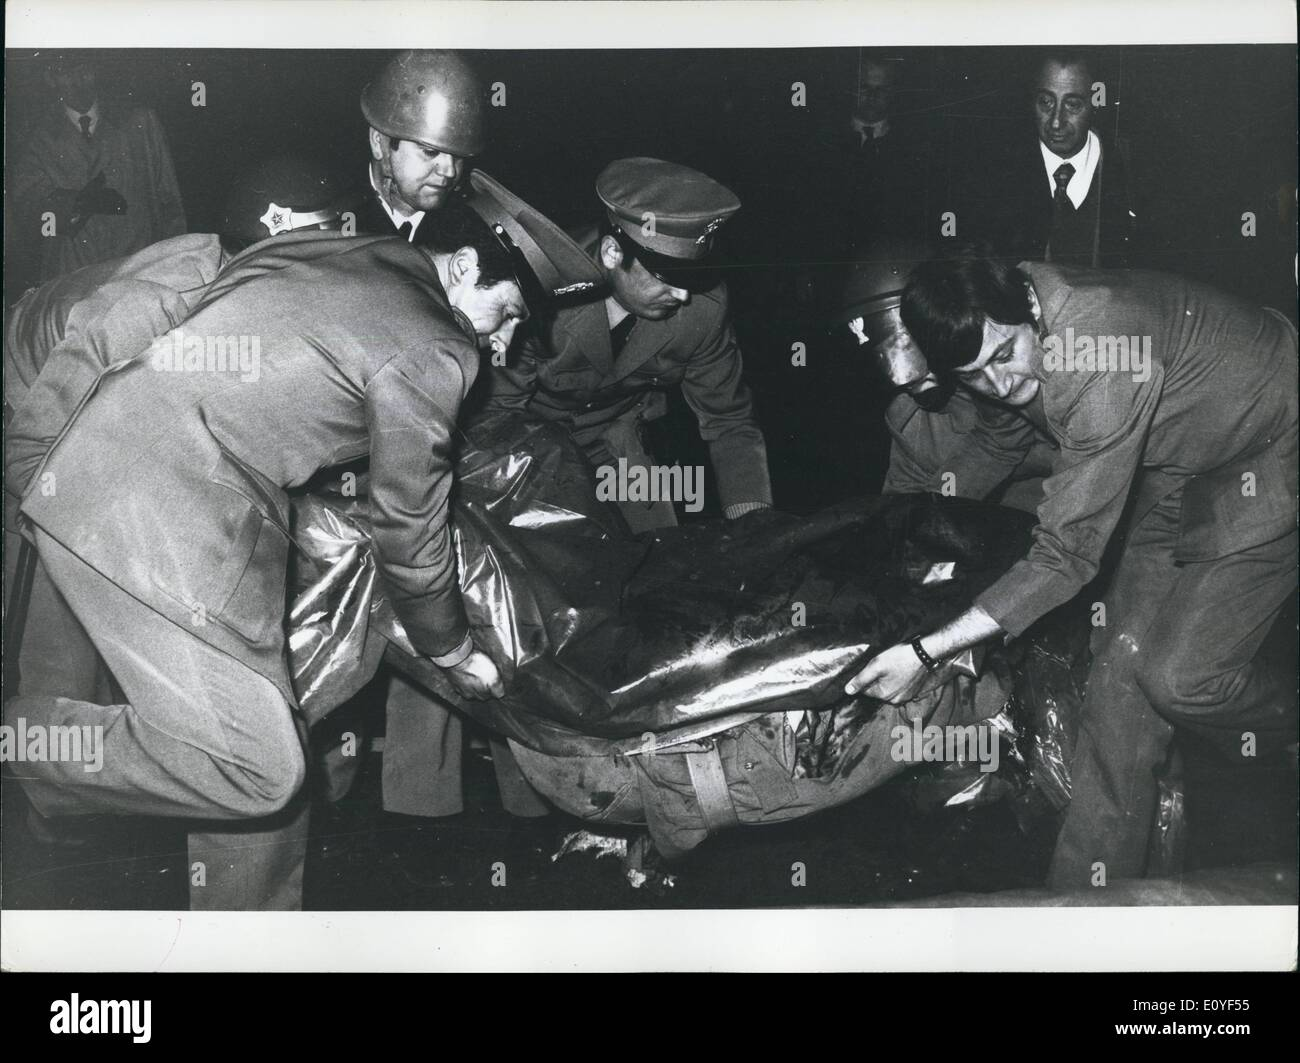 Jan. 1, 1970 - Milan Civil war: 22 year old Police agent torn to pieces by Fascist bomb. 31 persons wounded many agents have sobbed publicly. Antonio Marino, a 22 year old police agent, was torn to pieces when a bomb thrown by one fo the many new-fascist, blasted right wear killing hi instantly. This was another of the many days of extraordinary violence of Neo-Fascists who challenge openly all democratic institutions (State Government in Rome and Regional Governments everywhere) As known, the prefect of Milan had issued an order that during the period of the Milan fair, no public - Stock Image